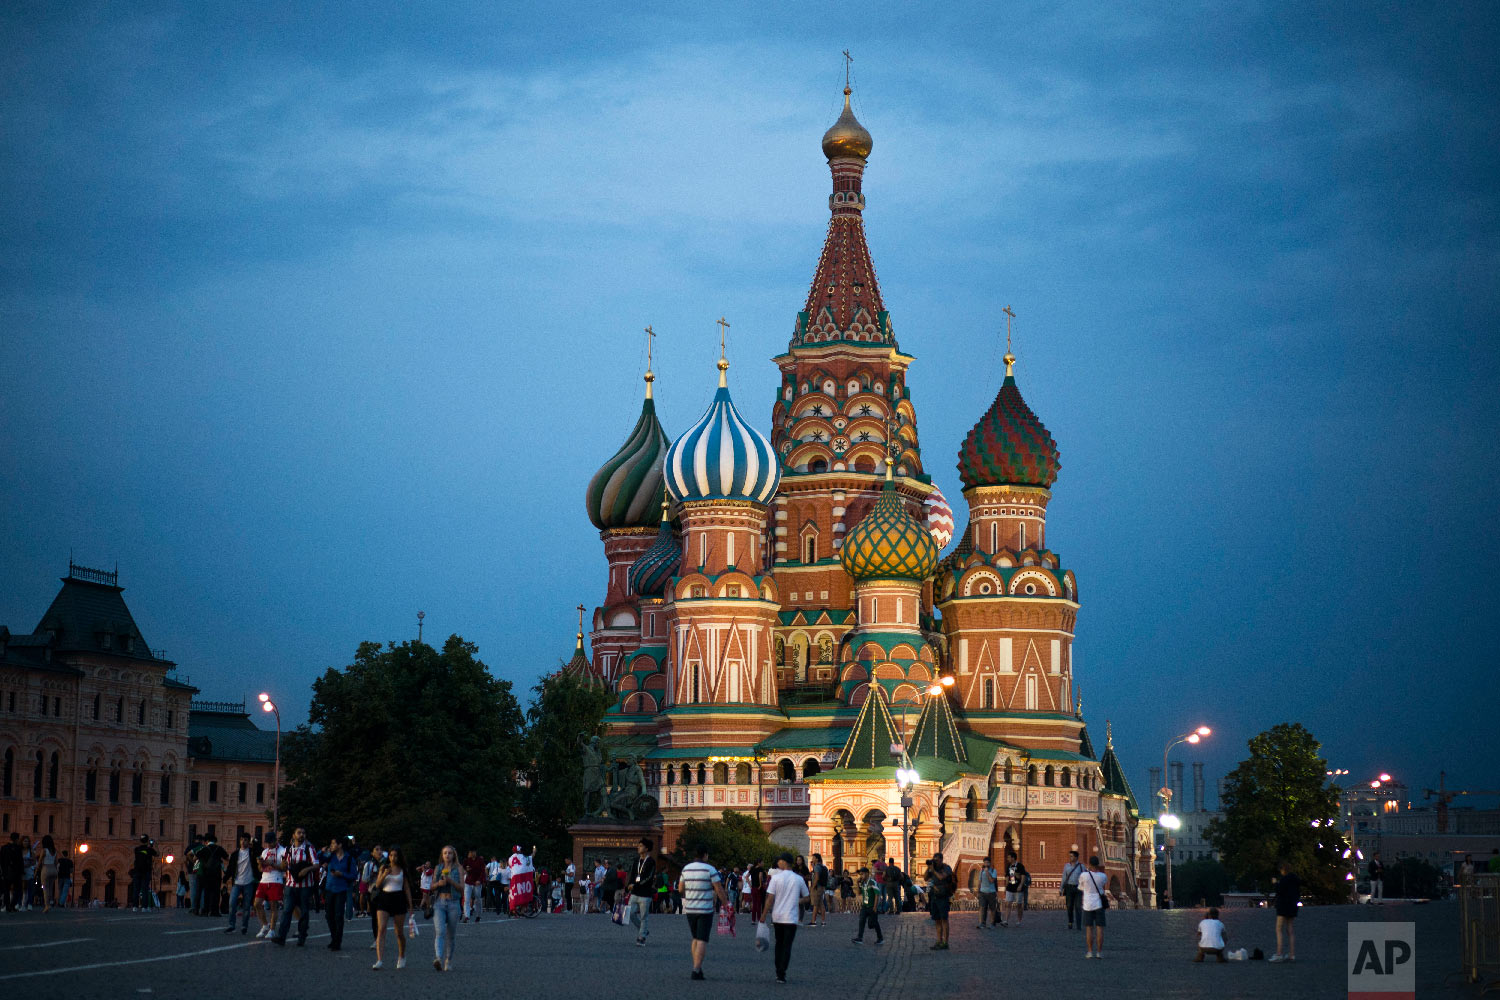 Tourists walk near the Saint Basil's Cathedral at dusk during the 2018 soccer World Cup in Moscow, Russia on June 19, 2018. (AP Photo/Felipe Dana)